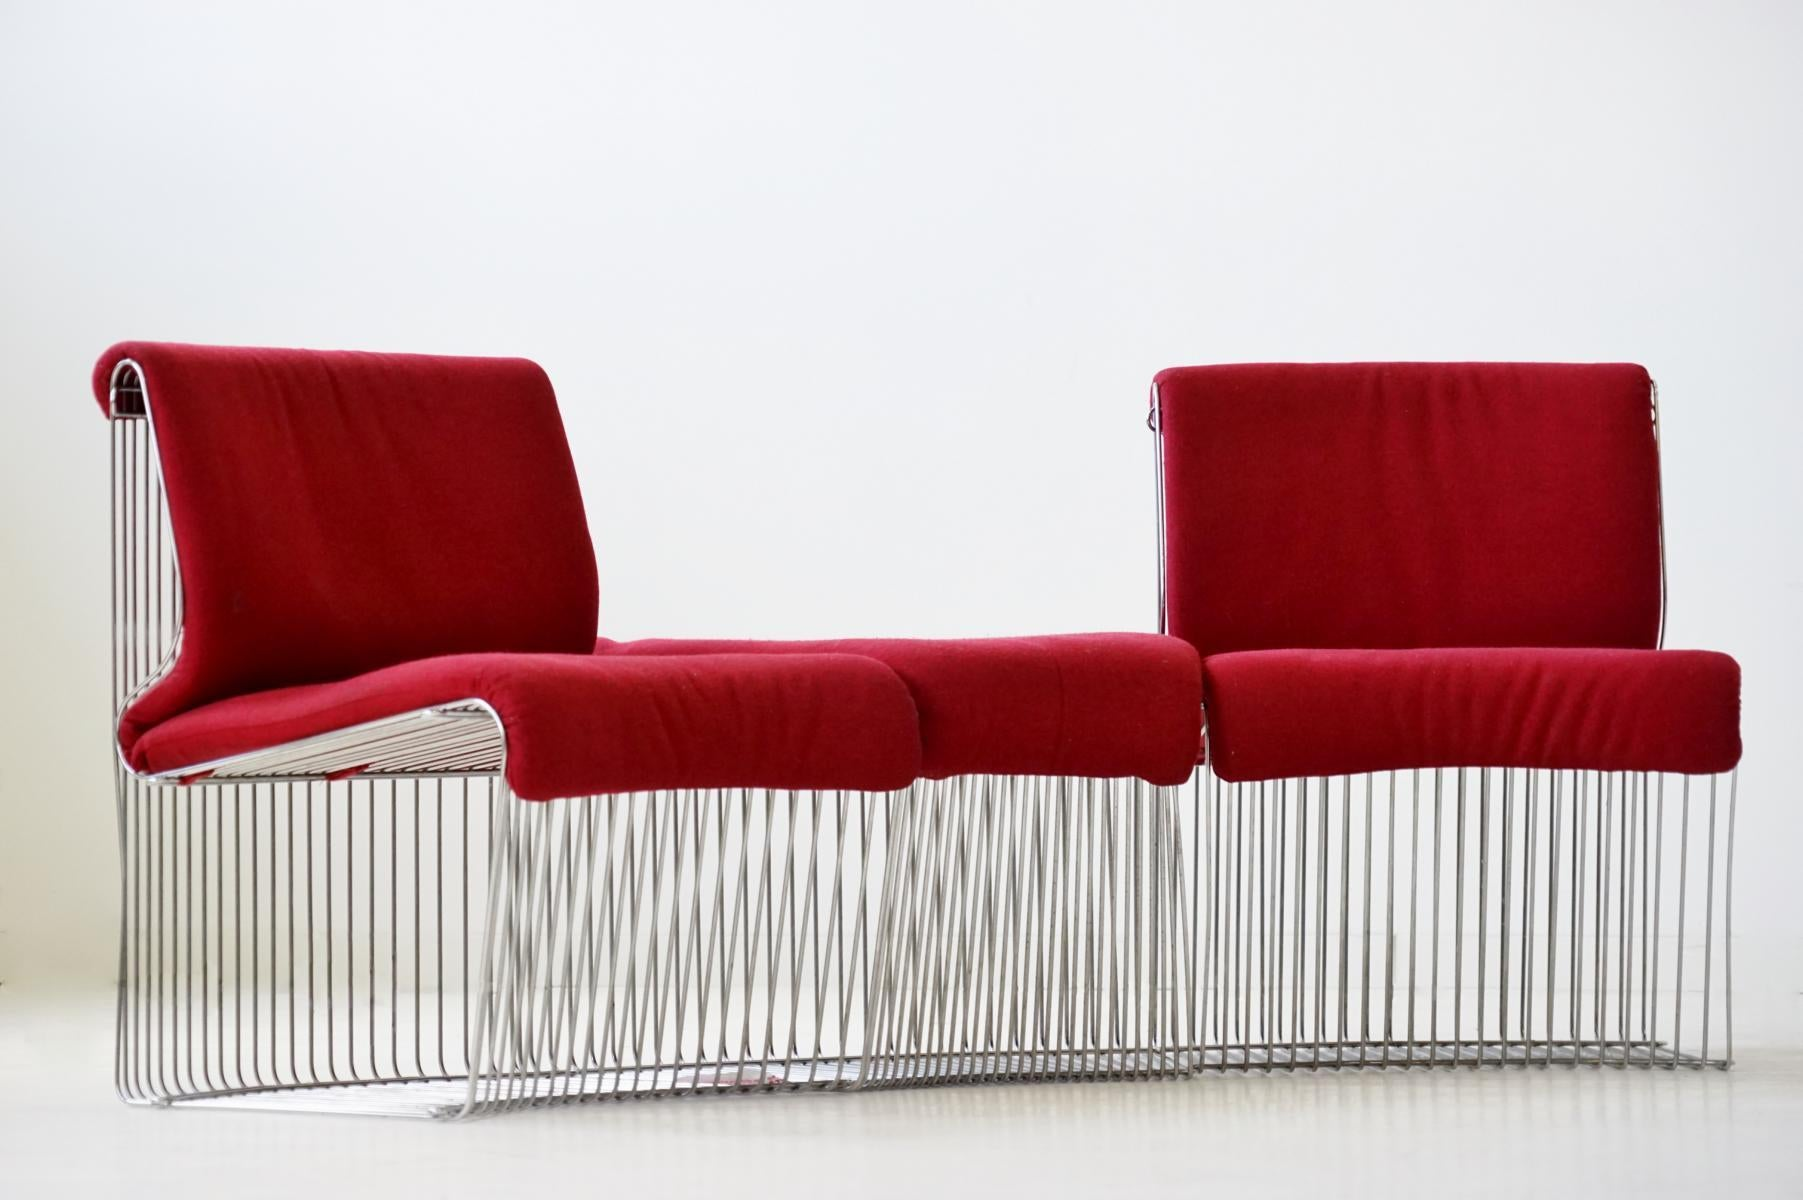 Wohnlandschaft Sale Pantonova Fritz Hansen Verner Panton Chair Sofa Modules Original Fabric